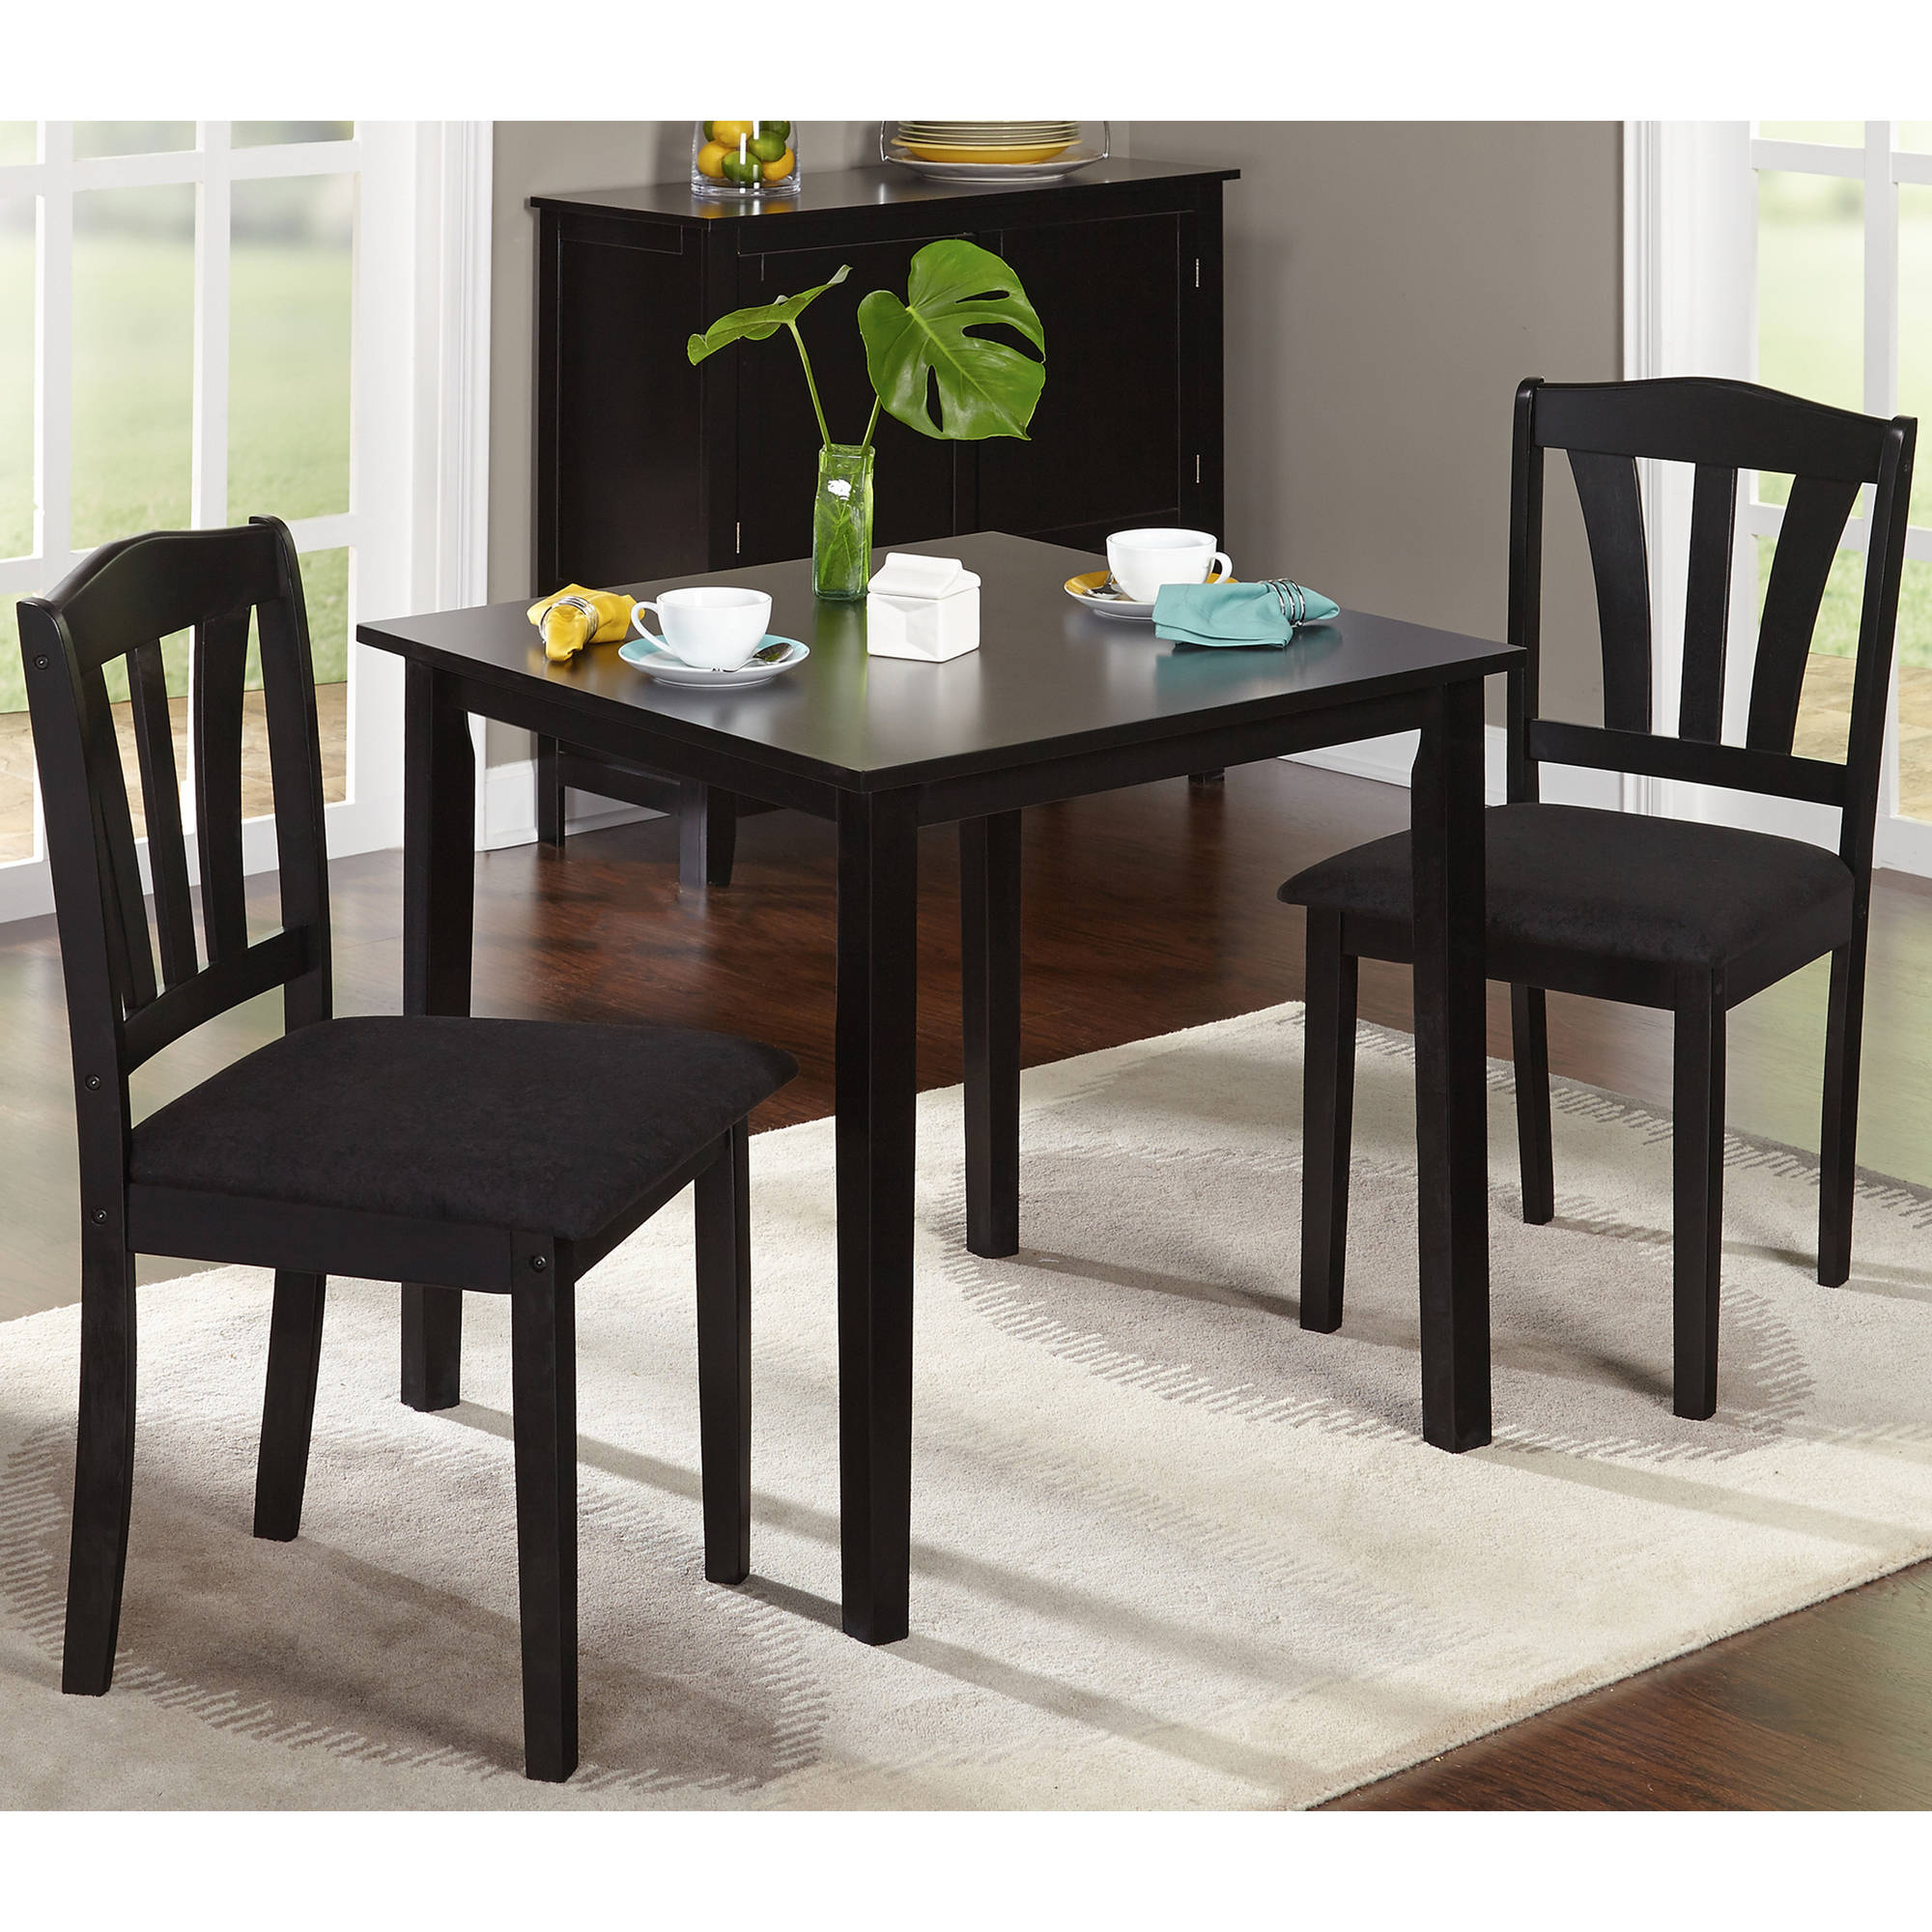 Favorite 3 Piece Dining Sets With Regard To Metropolitan 3 Piece Dining Set, Multiple Finishes (View 1 of 20)